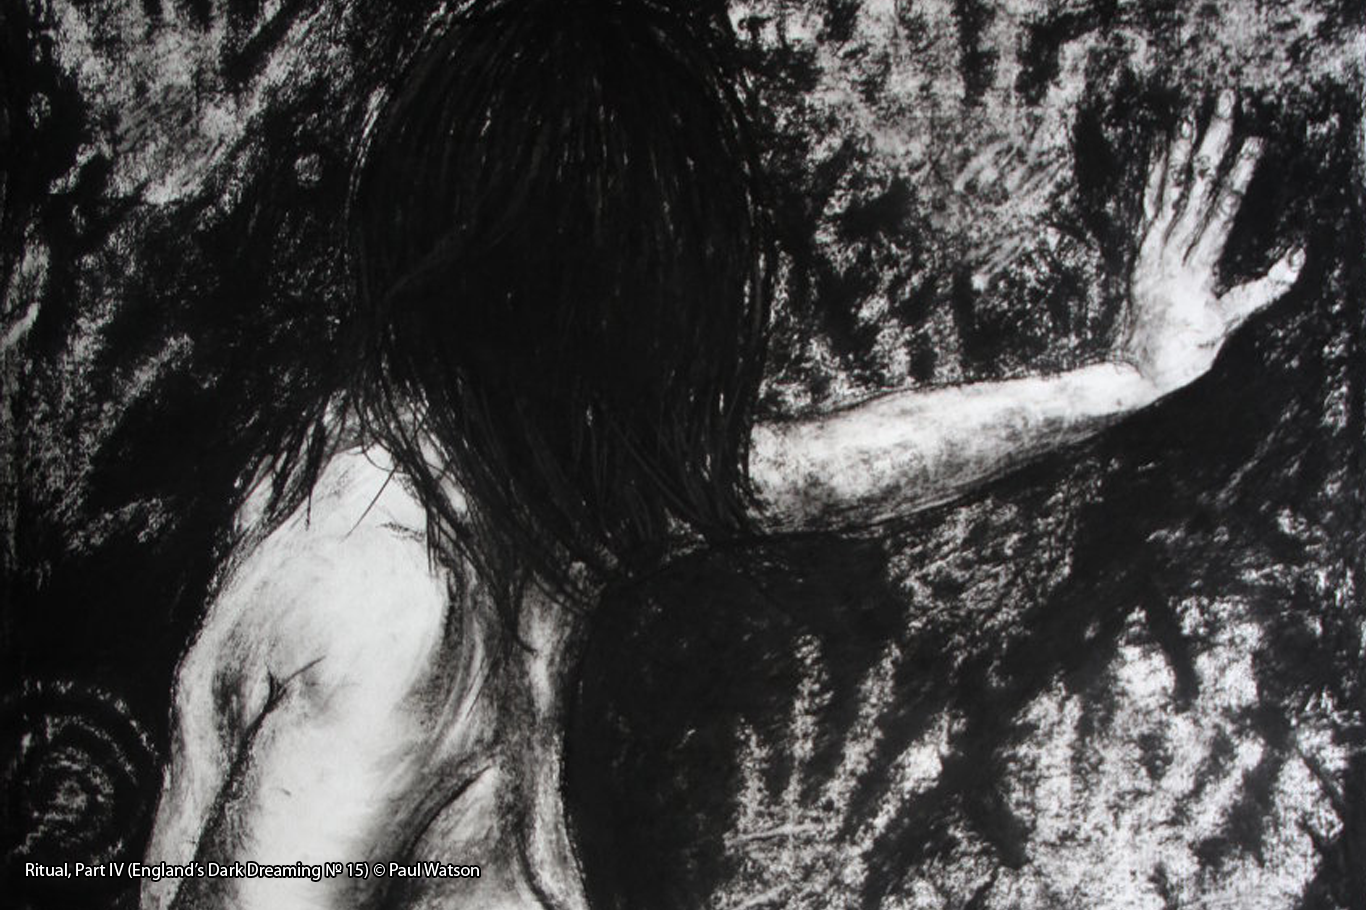 Ritual, Part IV (England's Dark Dreaming № 15) © Paul Watson Charcoal drawing of a woman making rock art handprints